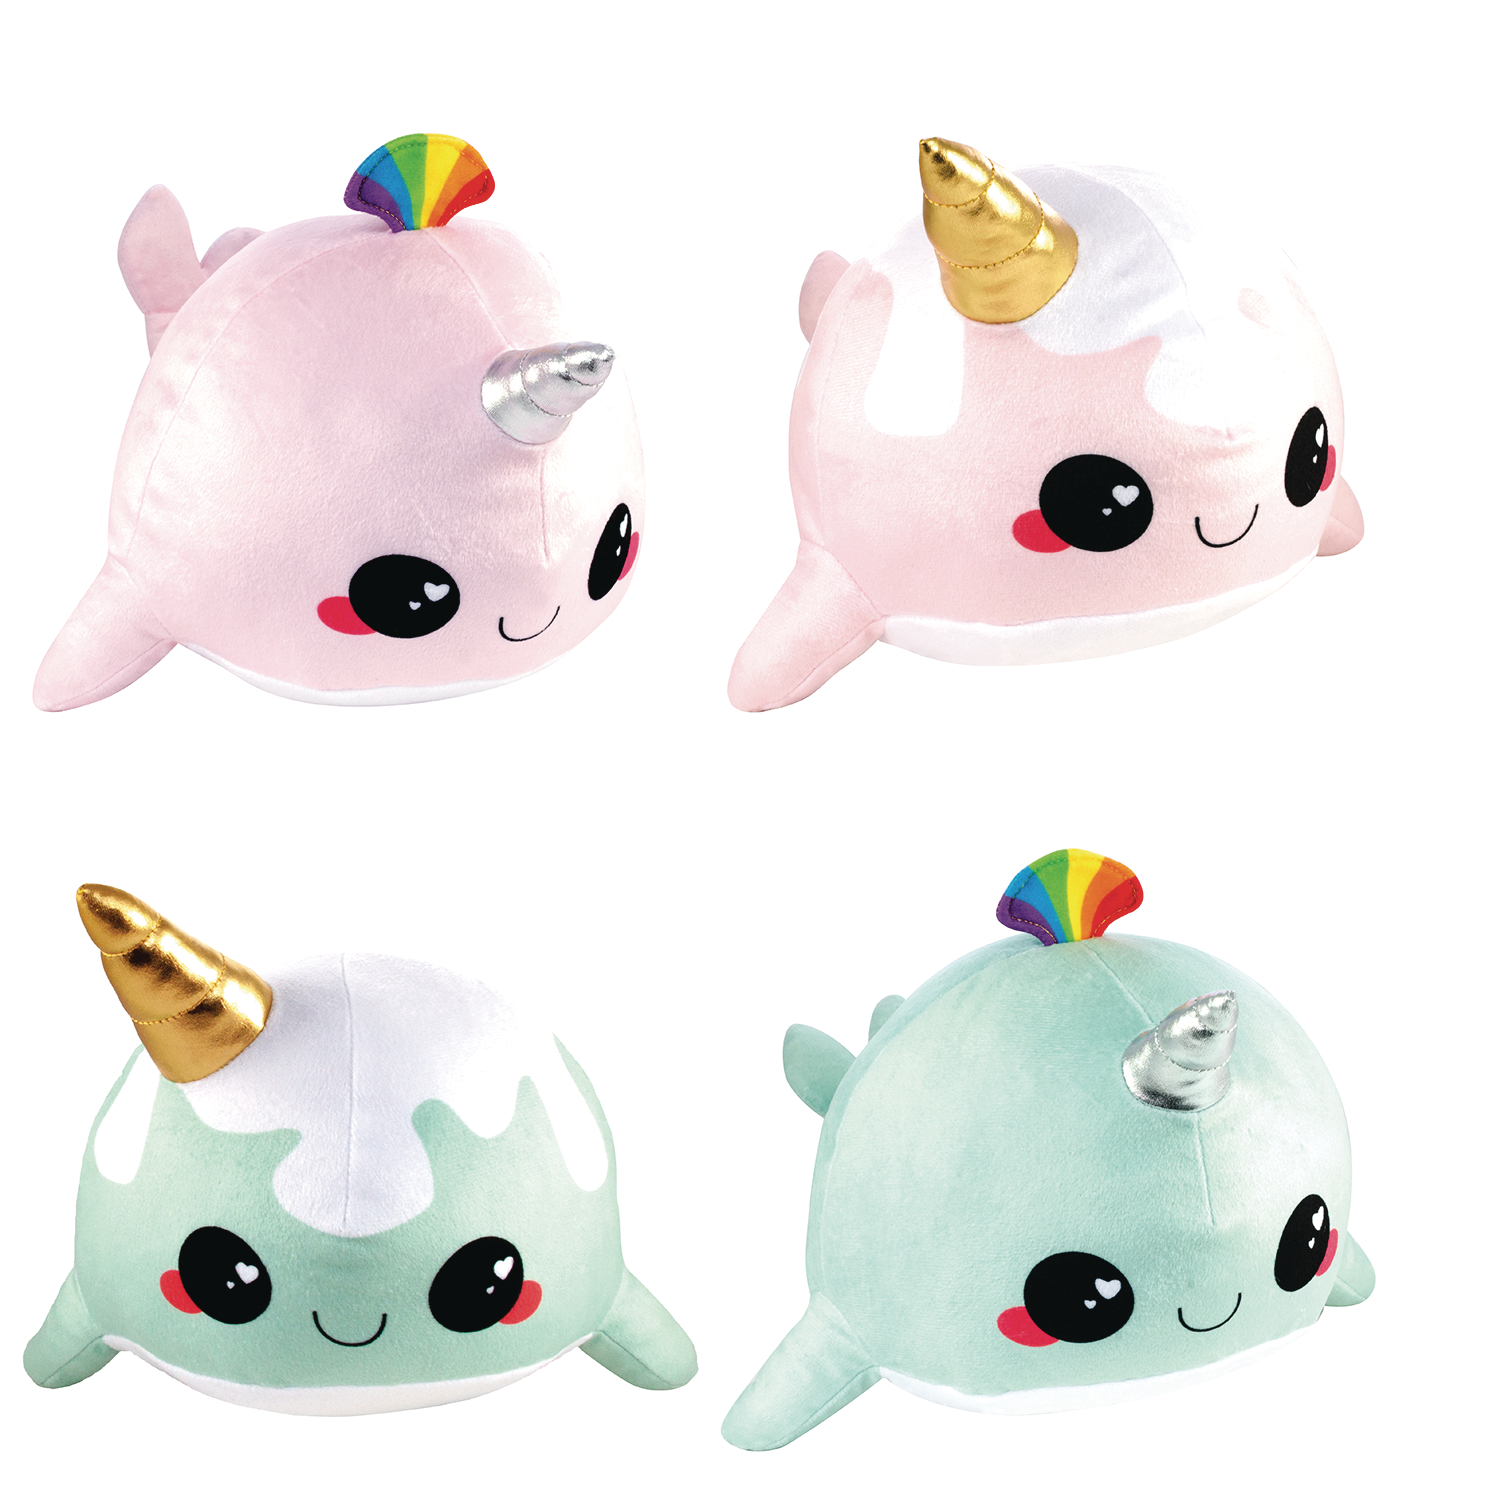 GLITTER GALAXY NARWHAL 9IN PLUSH 6PC ASST